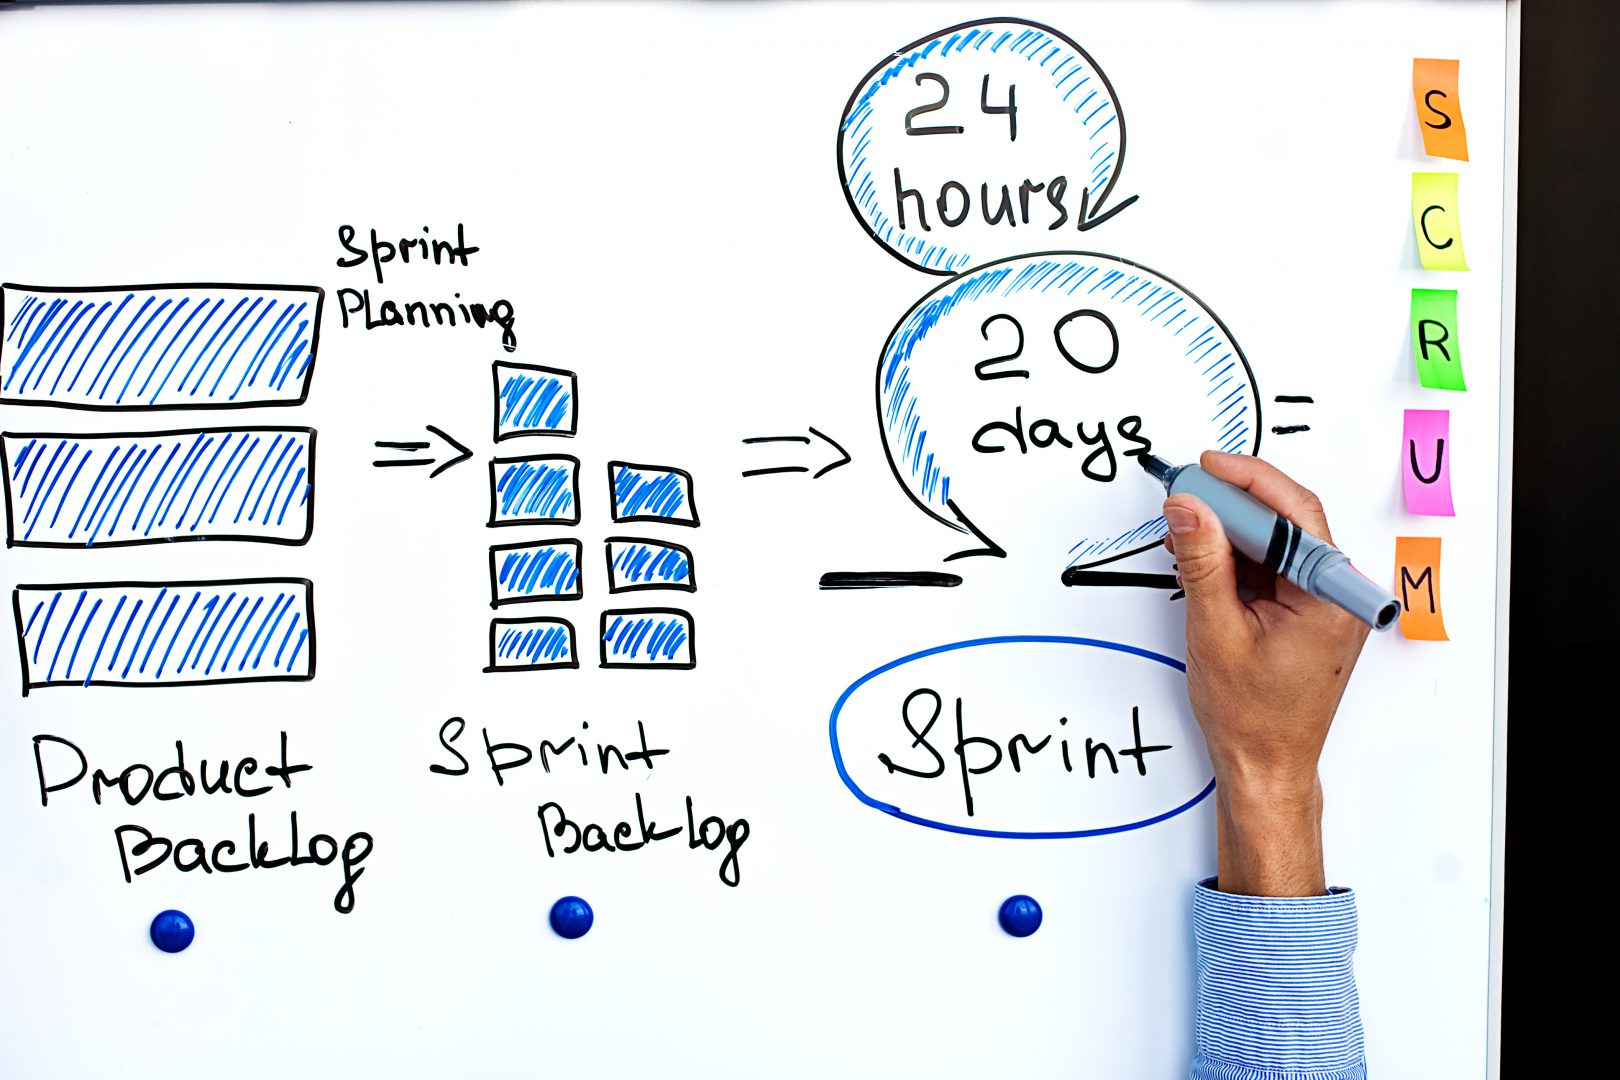 Product Backlog steps to sprint